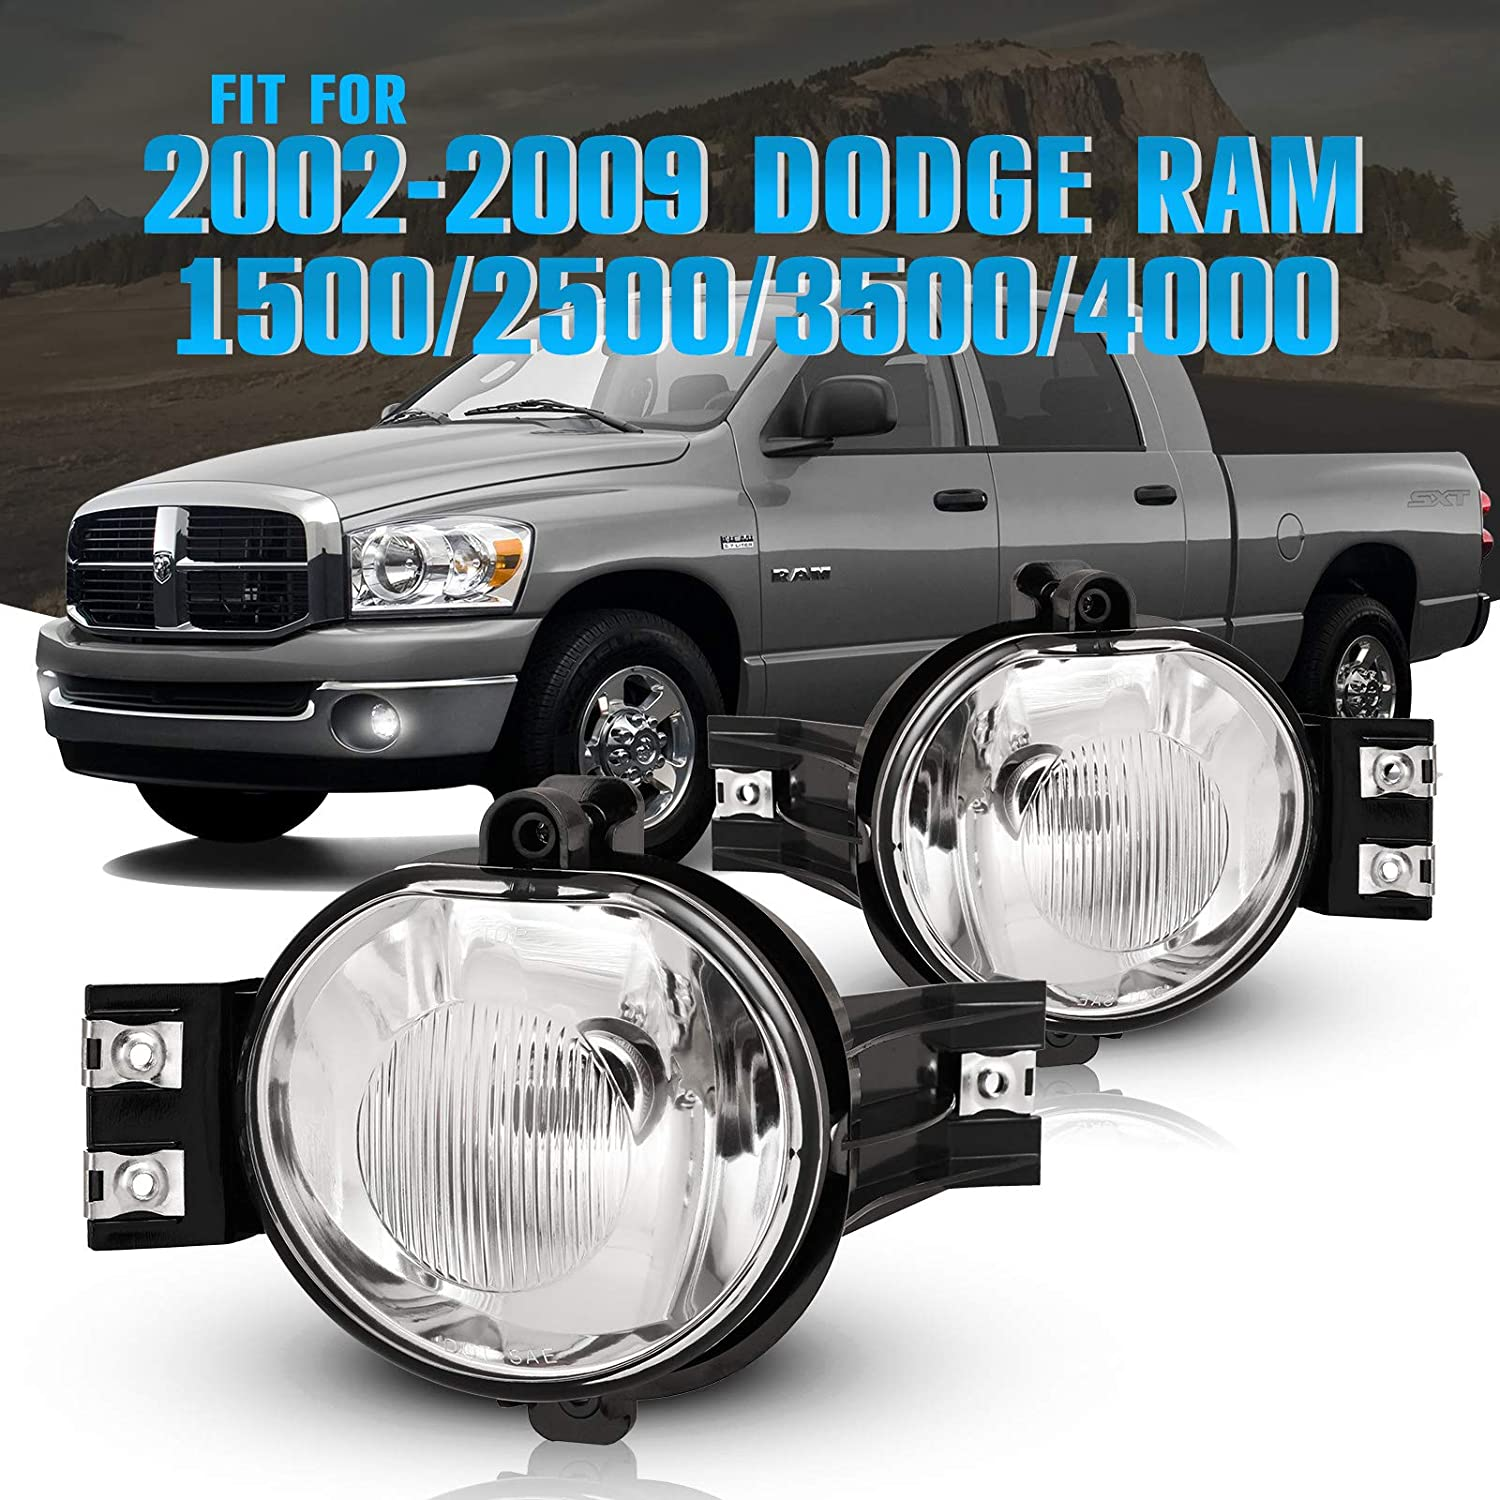 55077475AE Driving Fog Lights with Clear Lens for 02-08 Dodge Ram 1500 03-09 Dodge Ram 2500 03-10 Dodge Ram 3500 Fog Lamps for Passenger and Driver Side with OE Part # 55077474AE